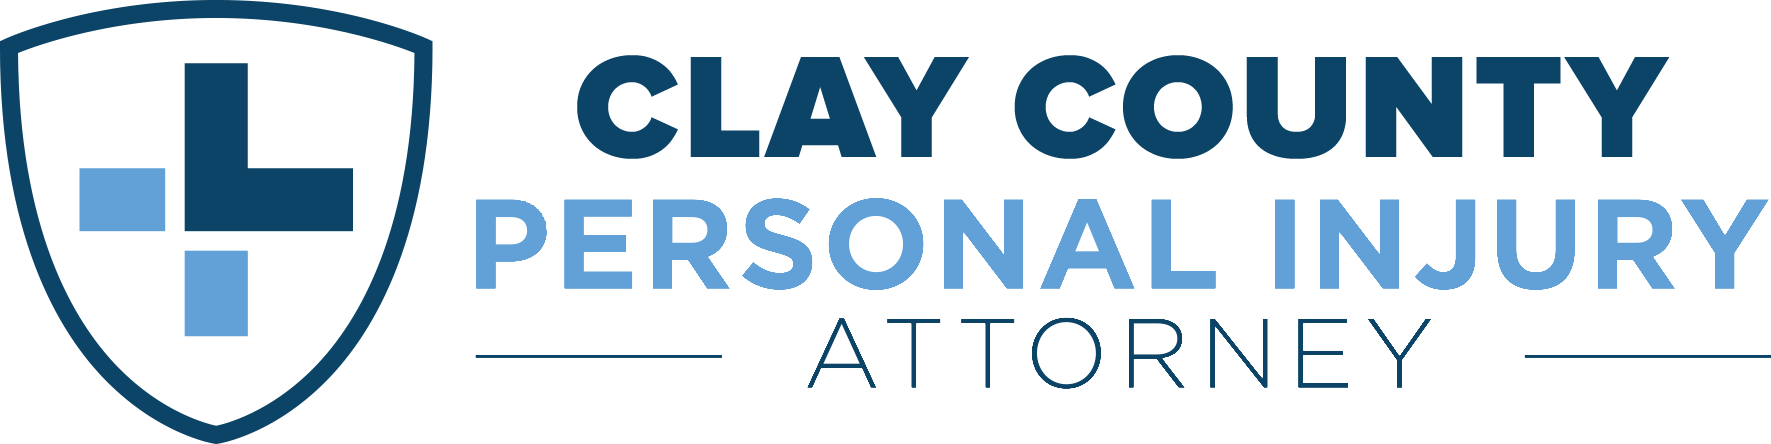 Clay County Personal Injury Attorney logo